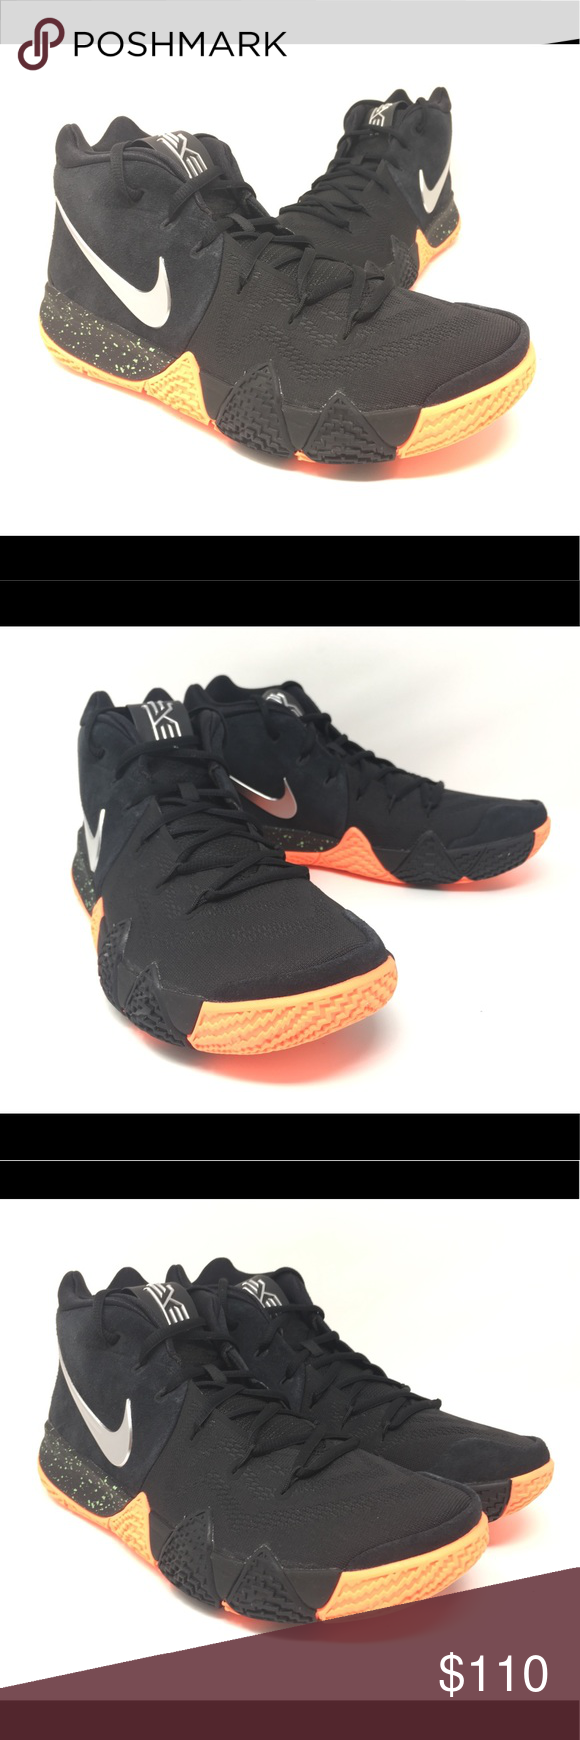 wholesale dealer 662e1 a8a1c ... 50% off nike kyrie 4 black silver basketball shoes new nike kyrie 4  black metallic